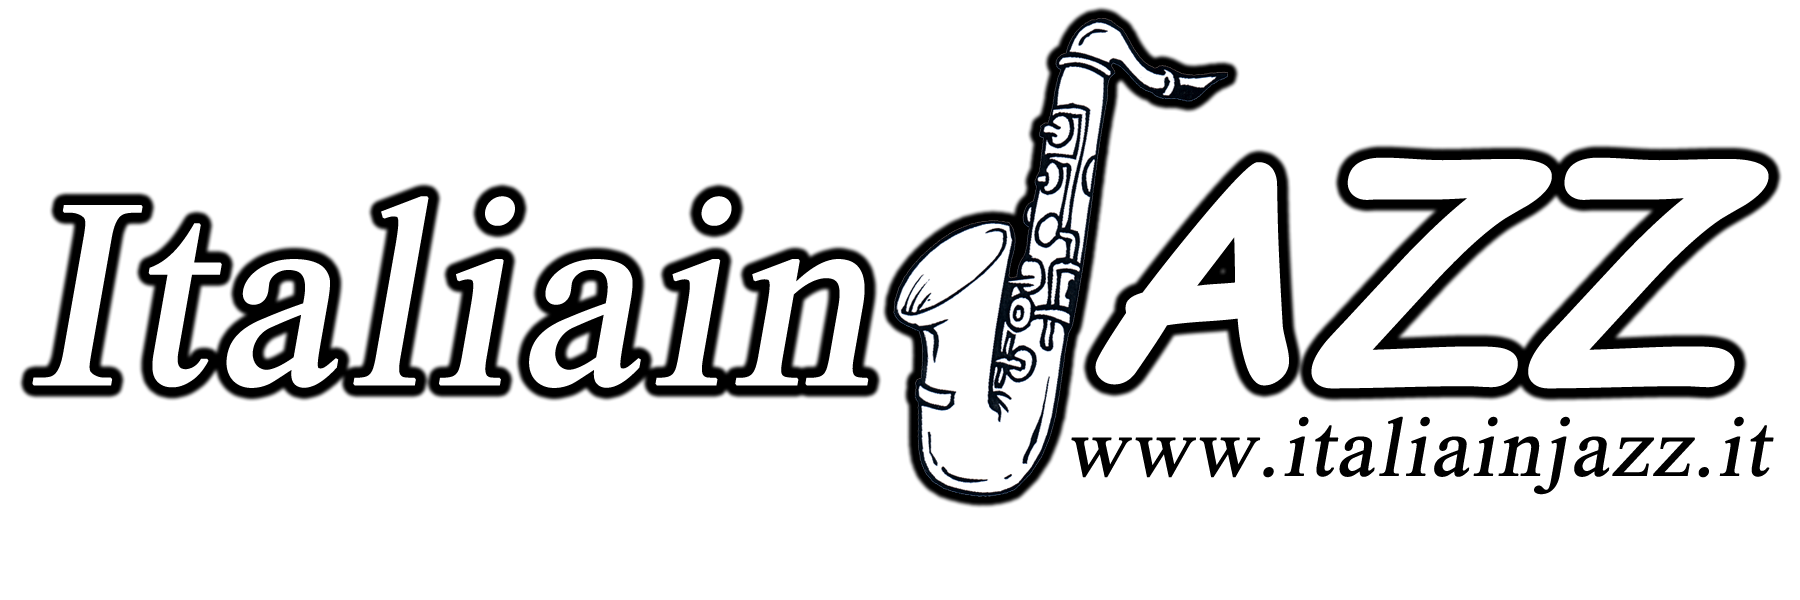 https://www.italiainjazz.it/images/Logo_2.png